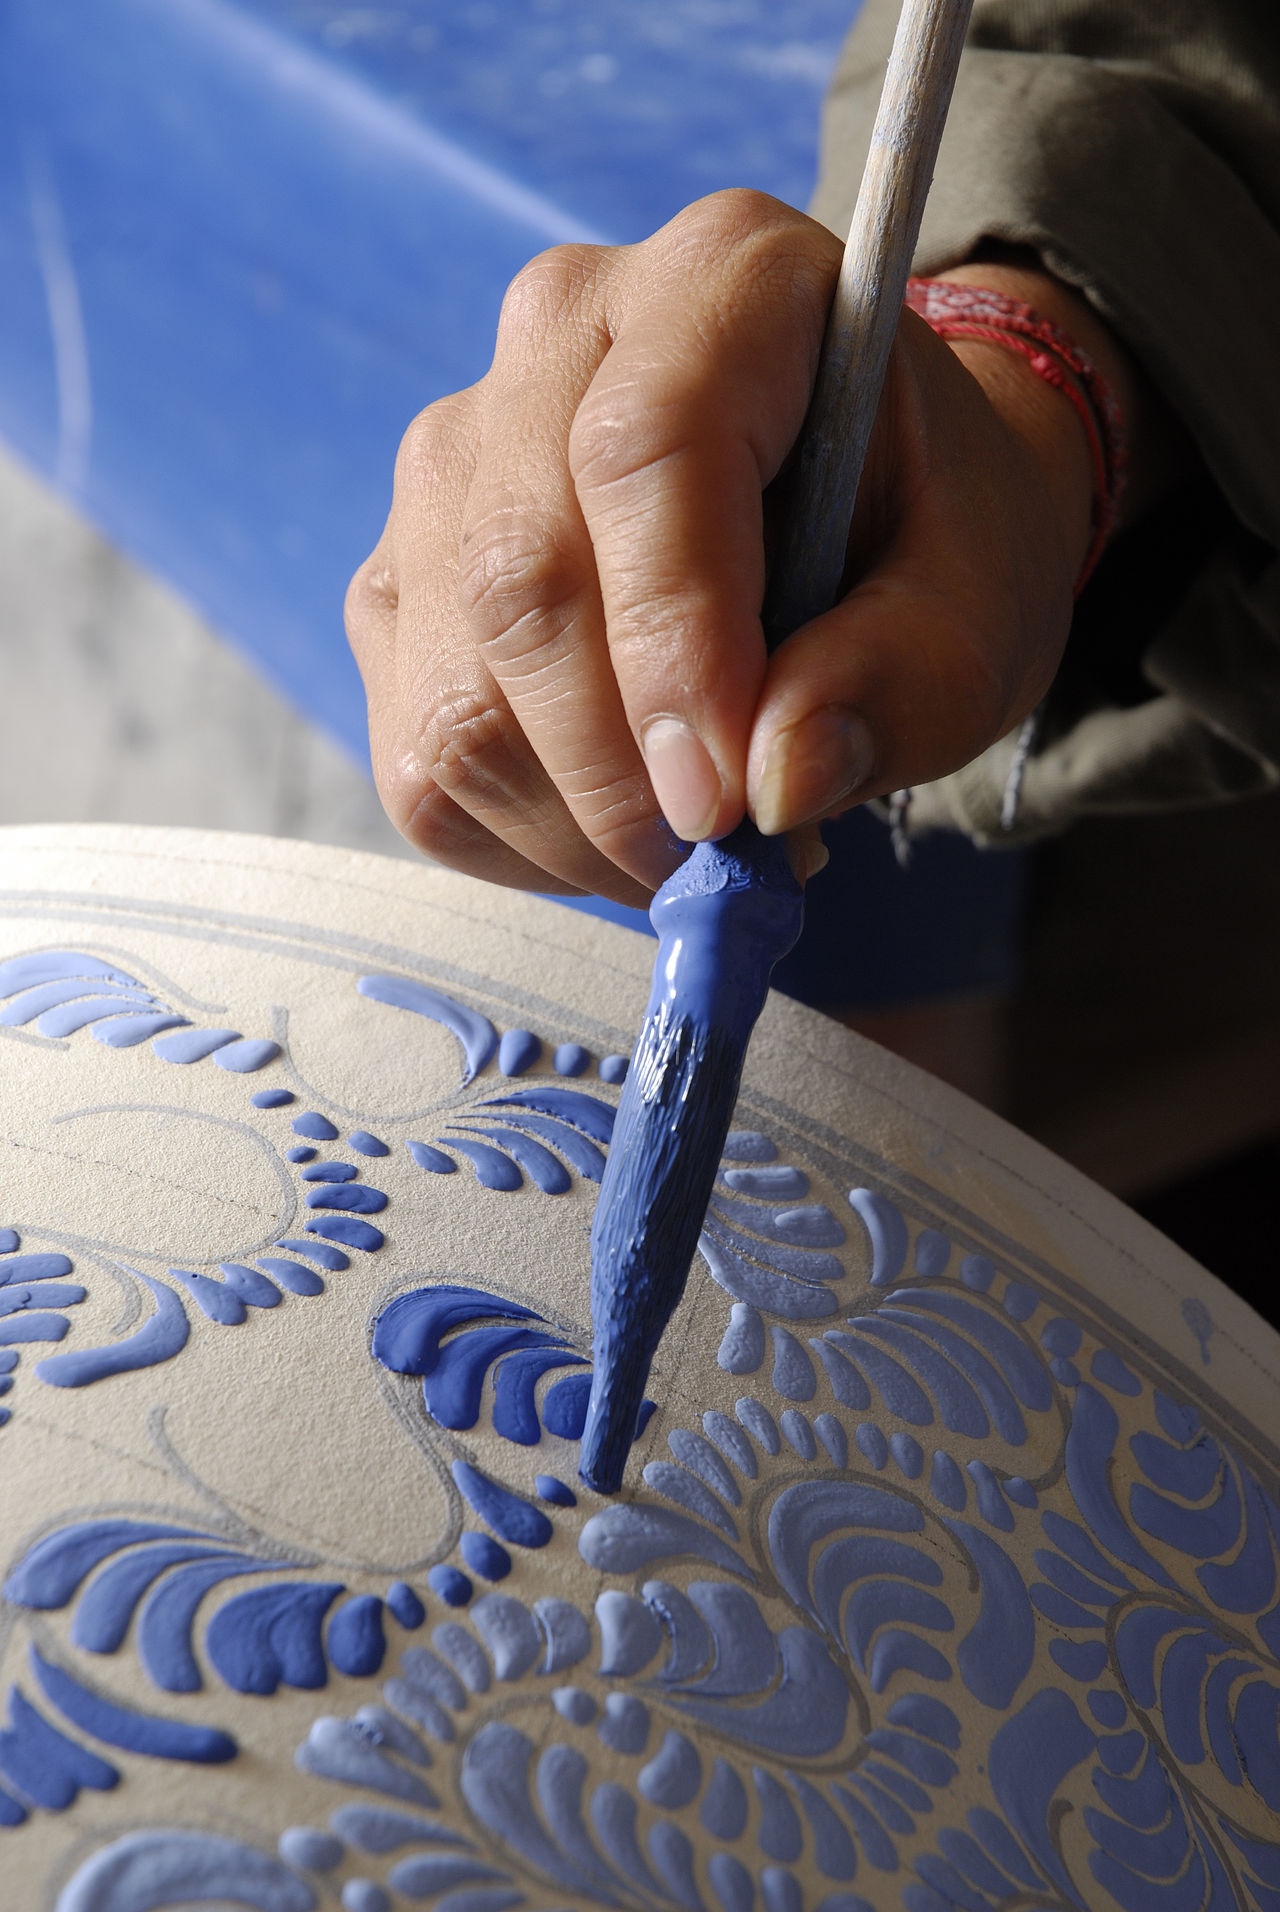 Talavera pottery being painted Art Skills Blue Close-up Hand Painting Holding Human Body Part Human Hand Mexican Handcraft Occupation One Person Outdoors People Popular Art Real People Sand Skill  Working